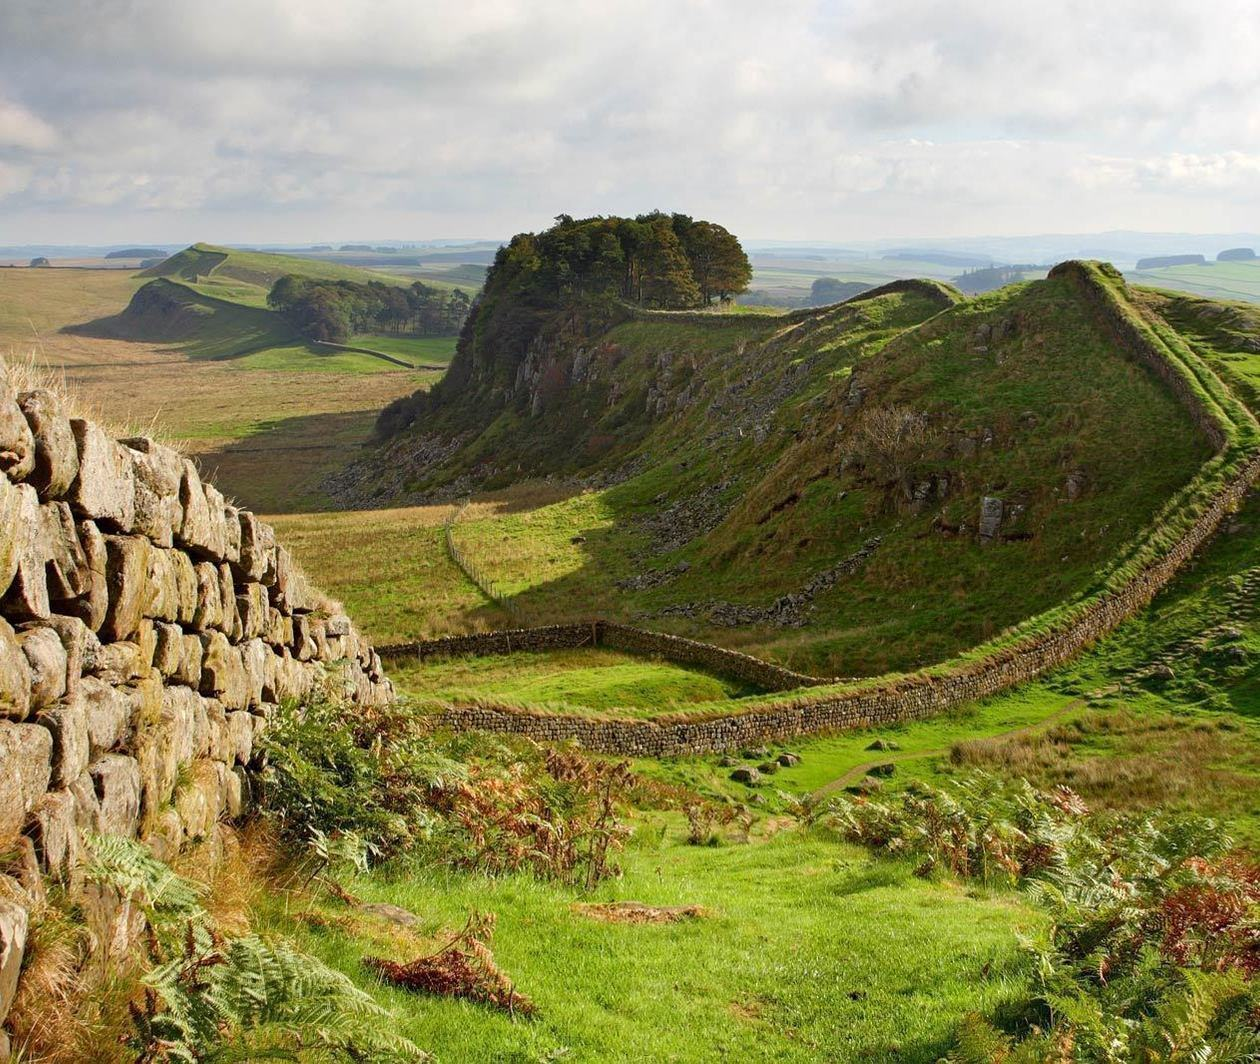 Hadrian's Wall: Life on the Roman Frontier